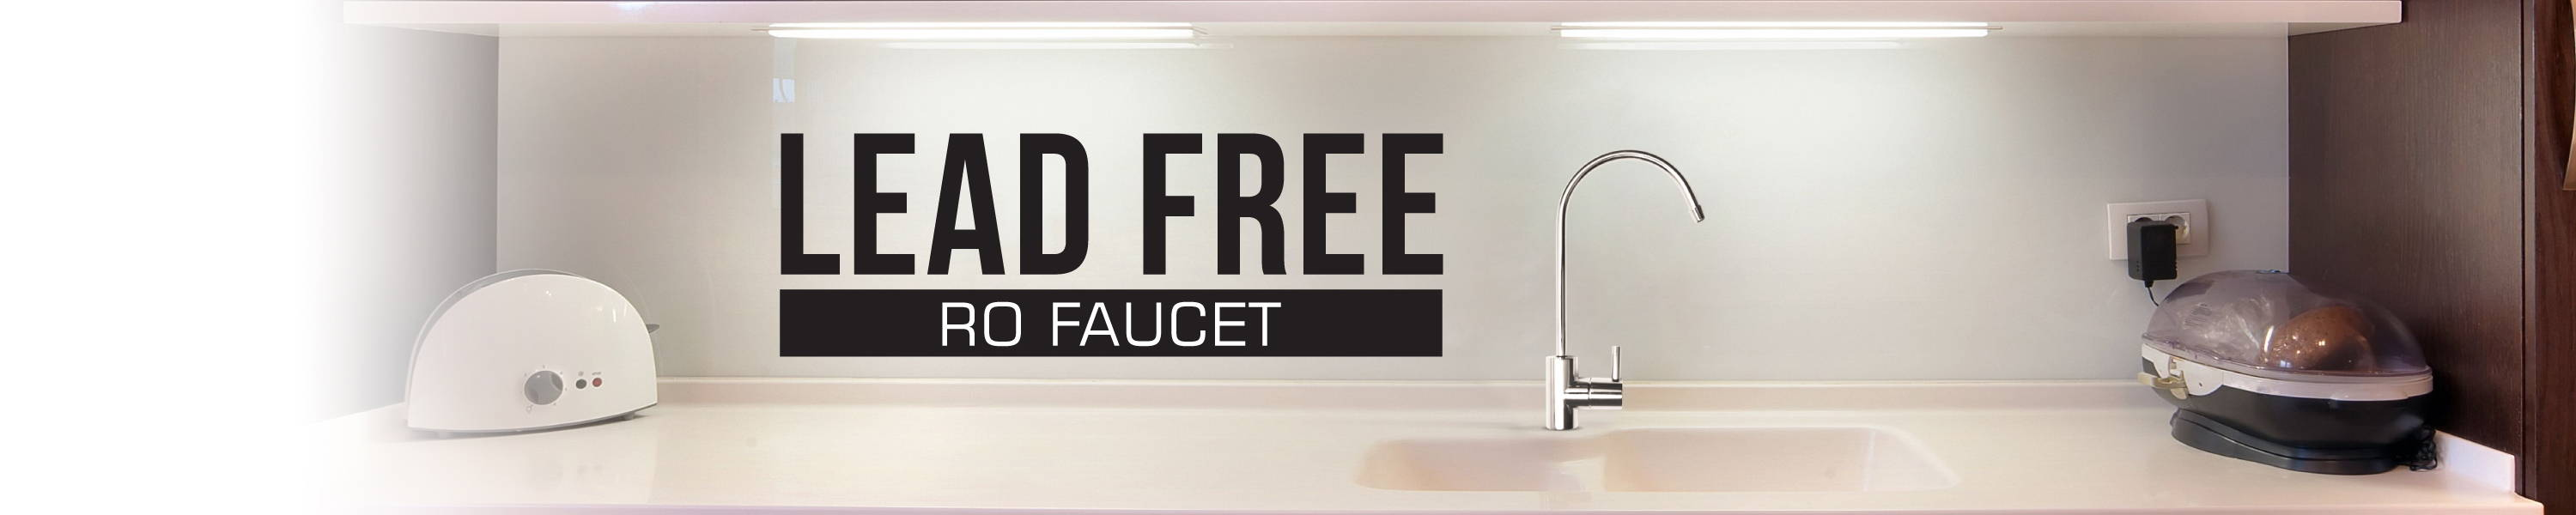 Lead free ro faucets